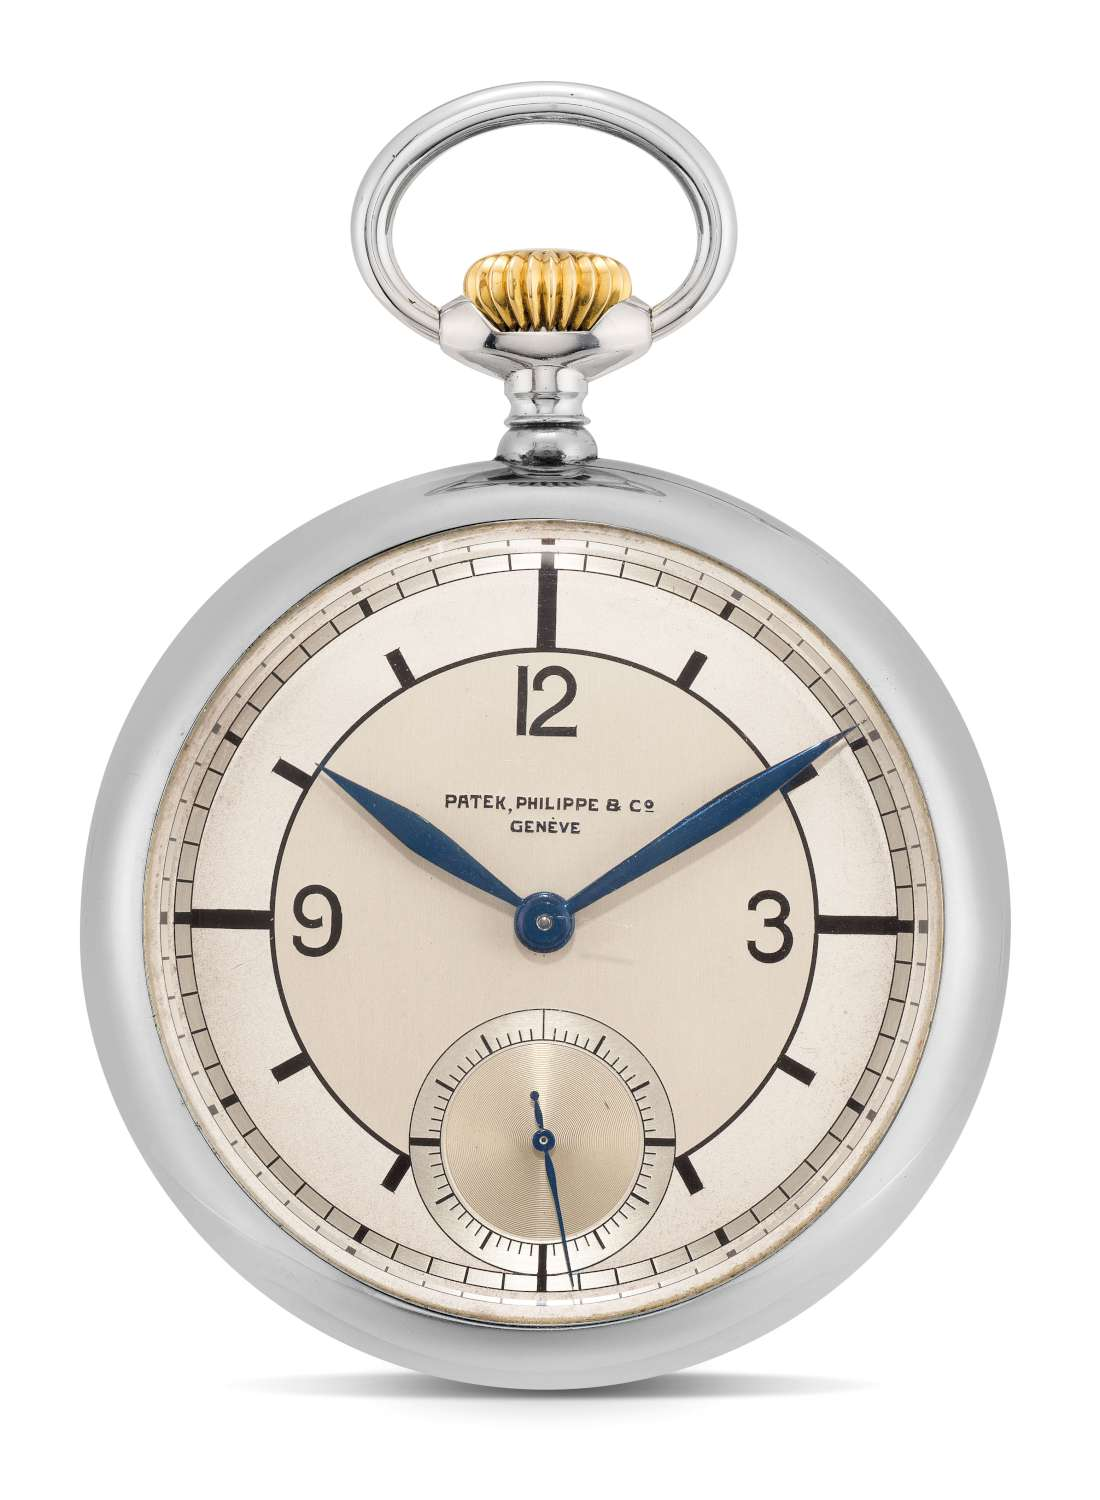 Lot 315_Patek Philippe stainless steel openface watch with one minute tourbillon regulator-1500